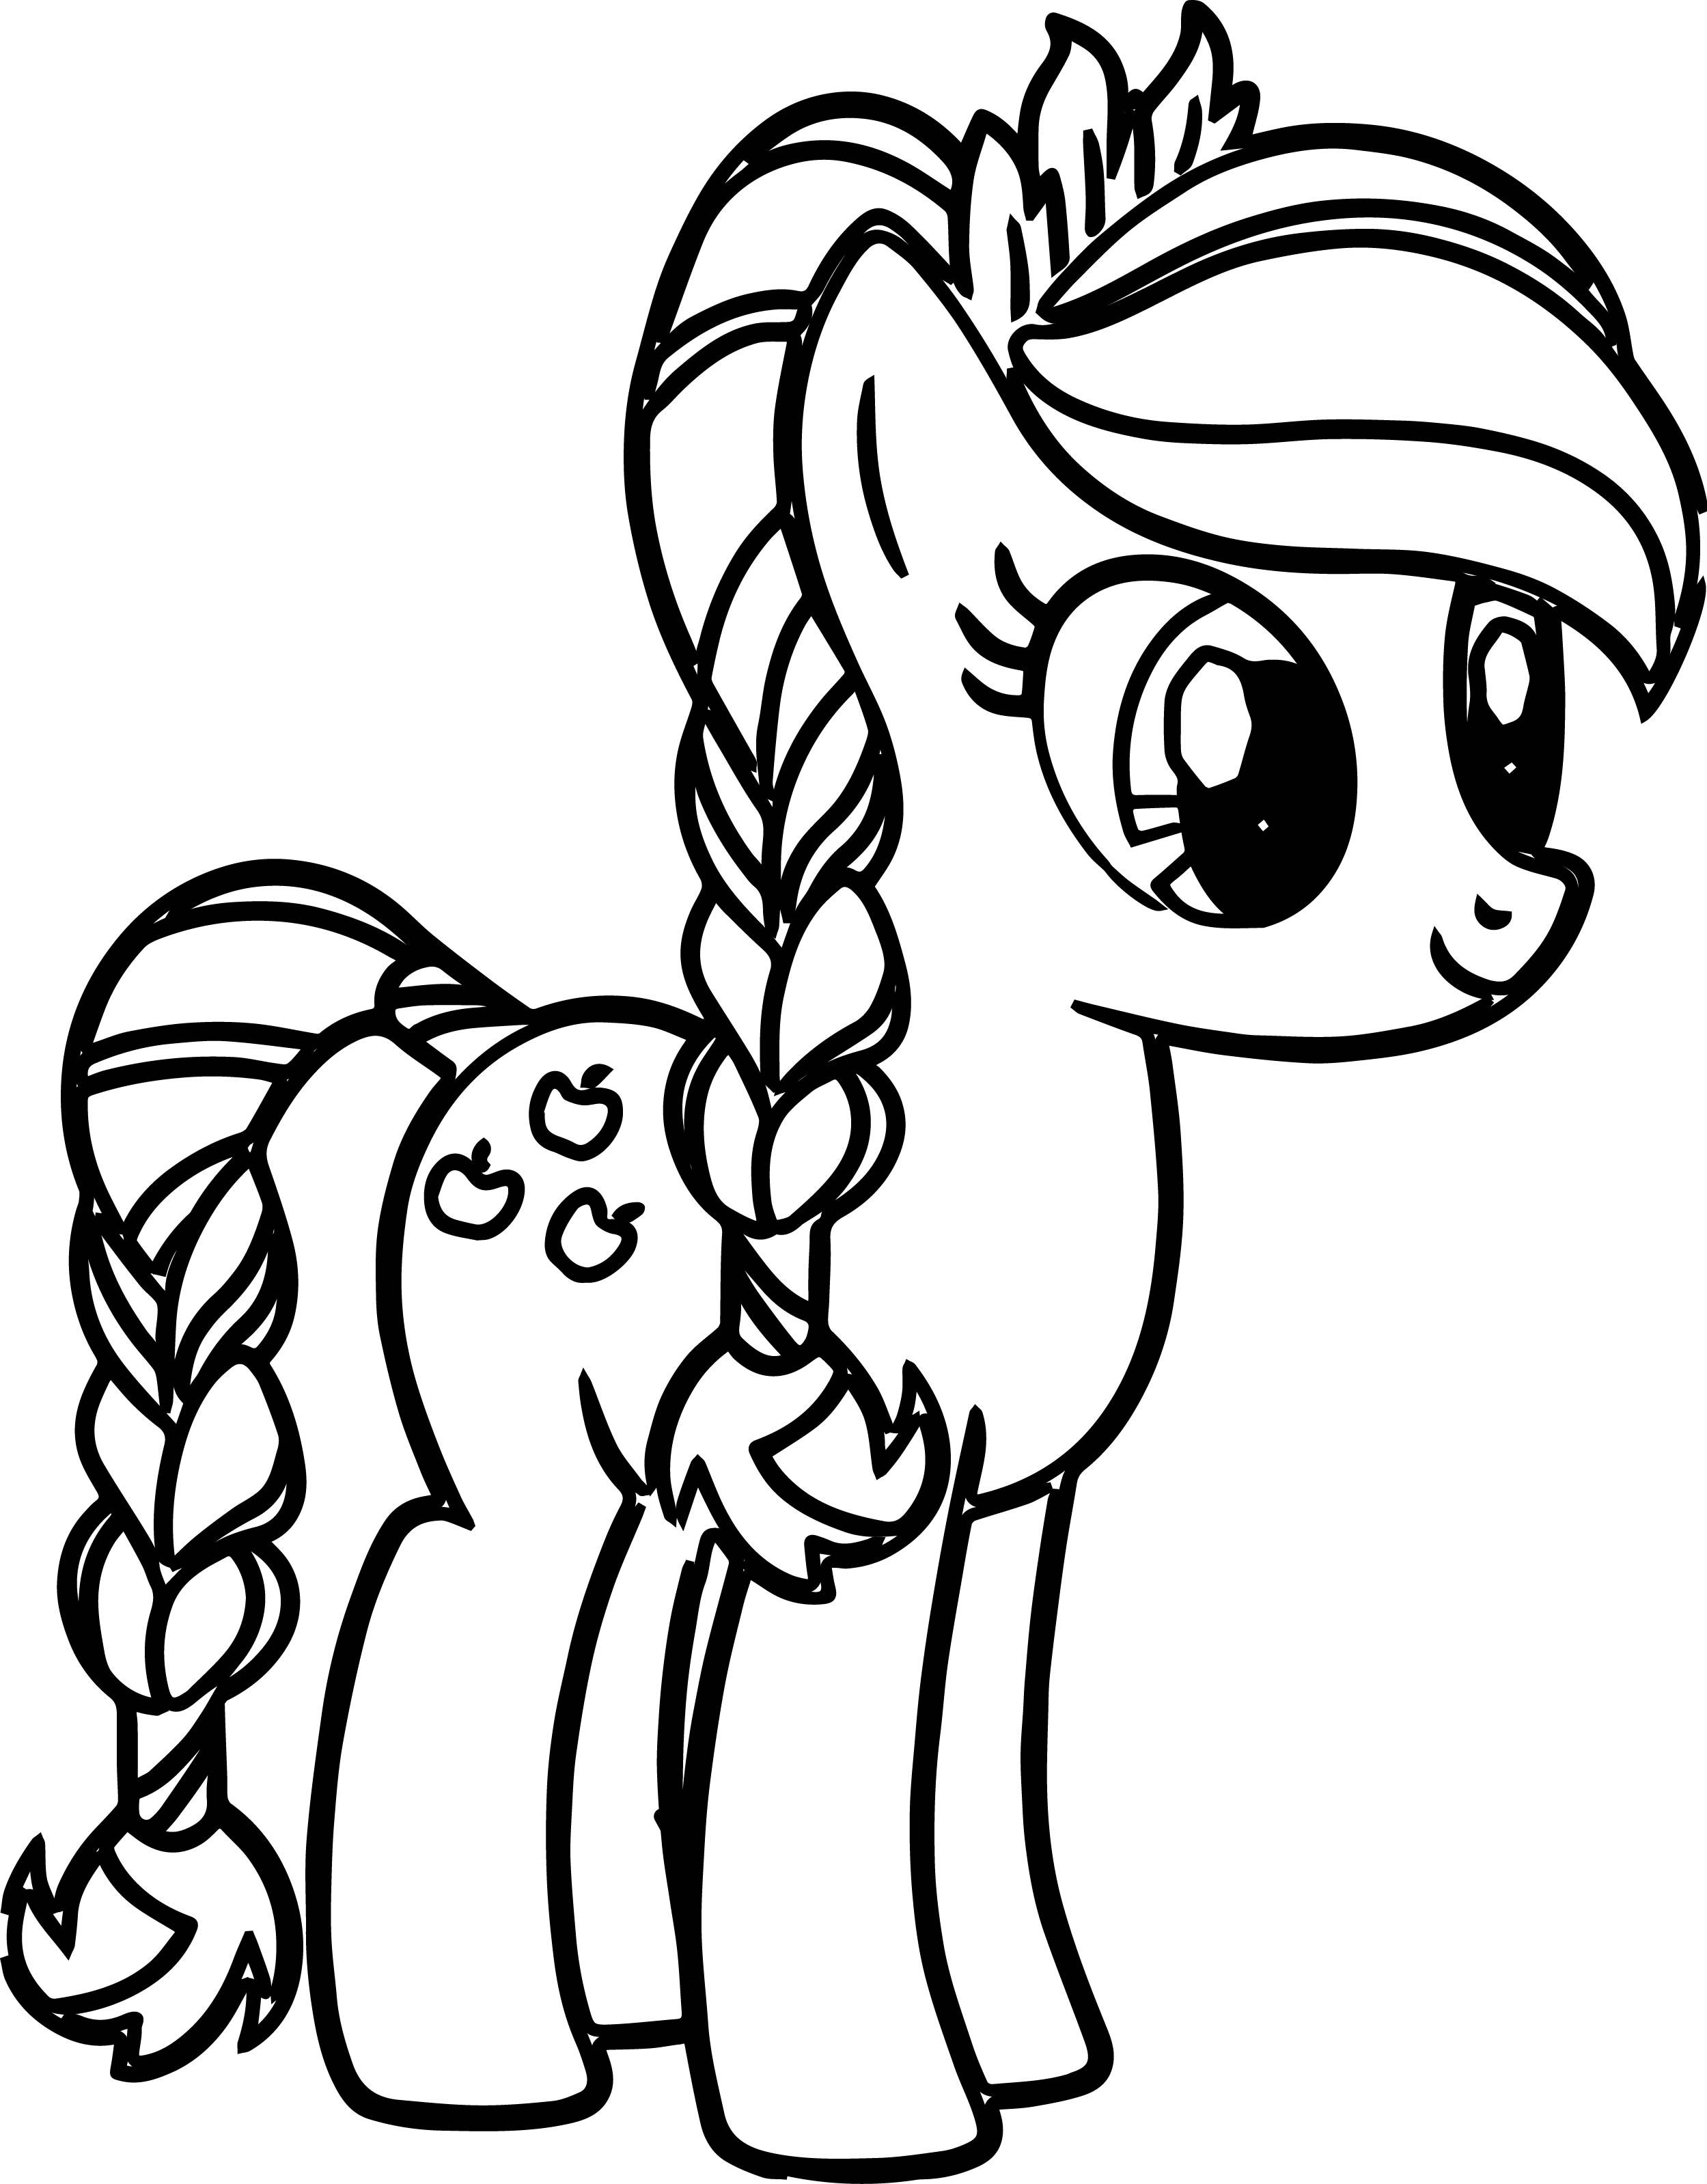 my little pony print outs ponies from ponyville coloring pages free printable print pony outs my little